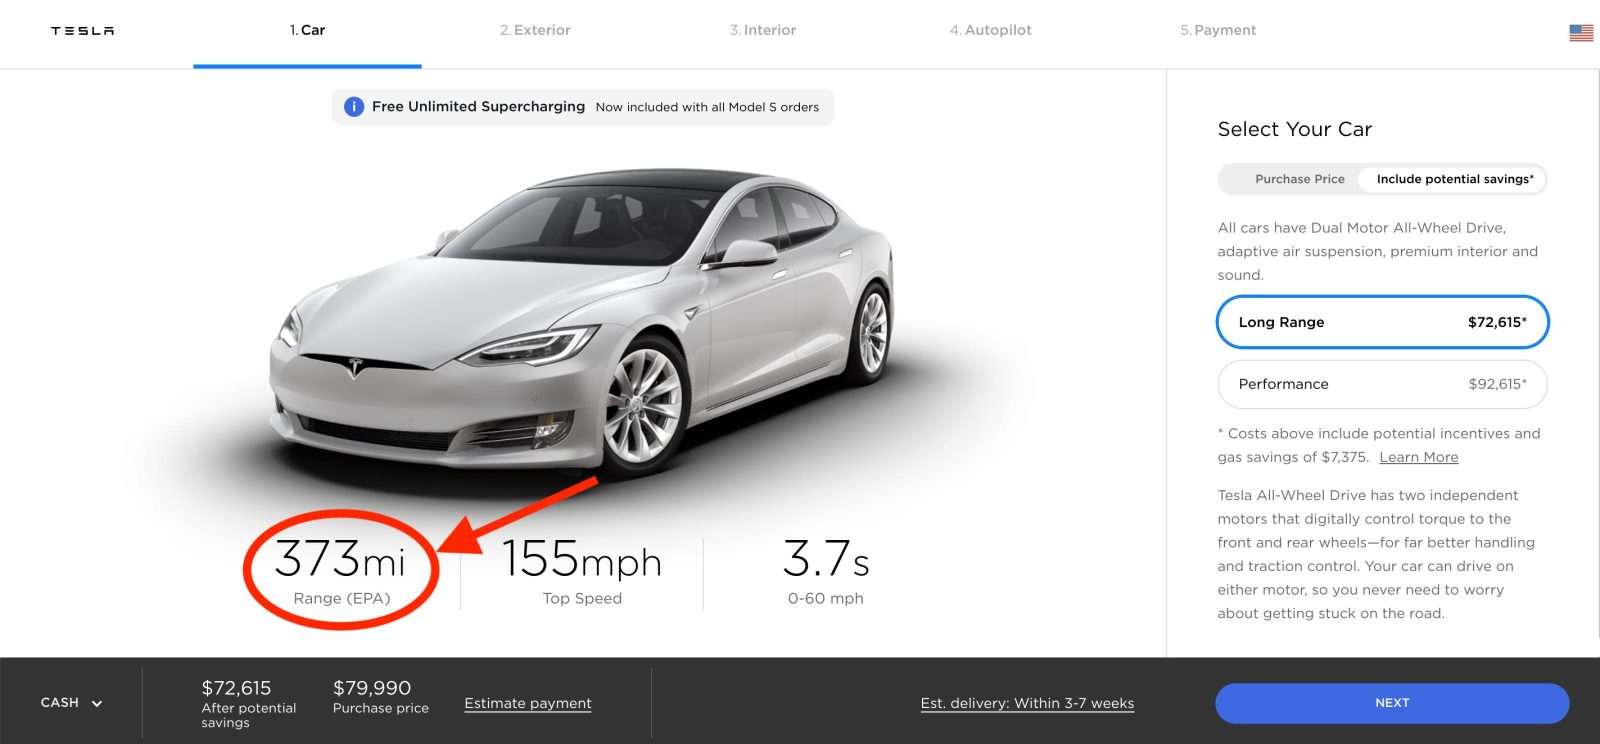 Tesla increases Model S and Model X range, now tops at 373 miles